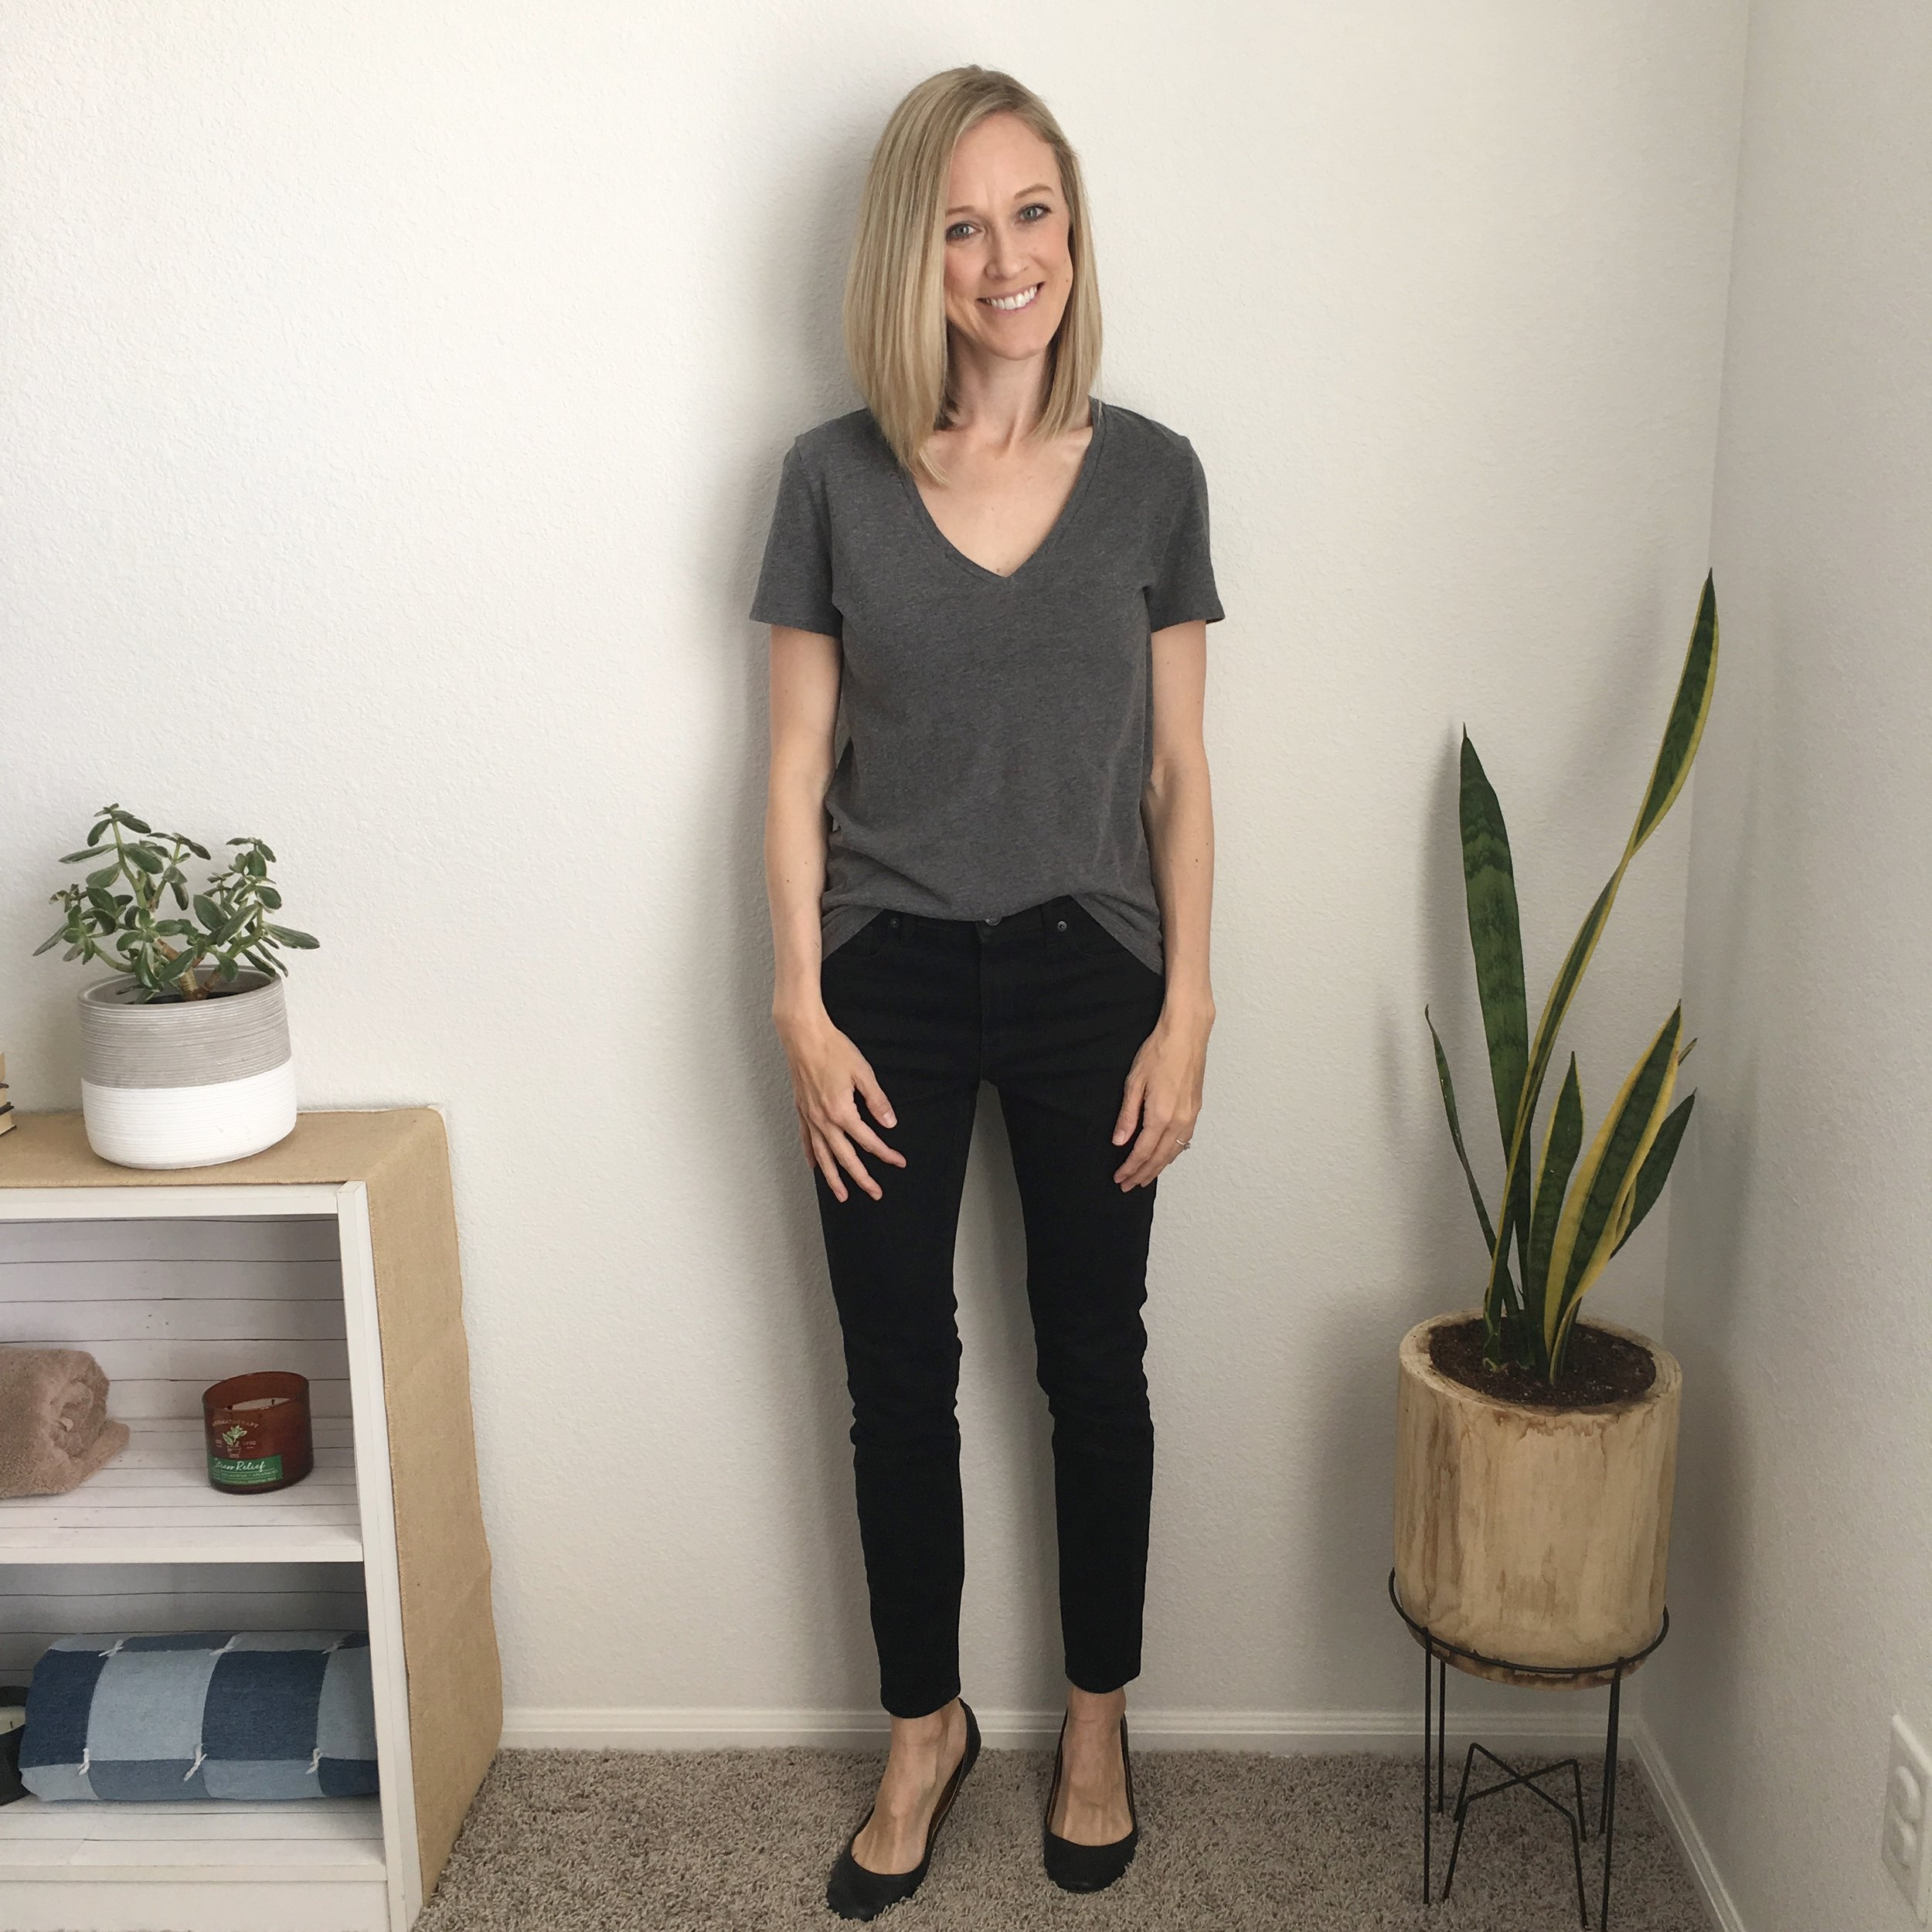 Cotton V-Neck Tee  and  Mid-rise Skinny Jean , in neutrals like I like 'em.